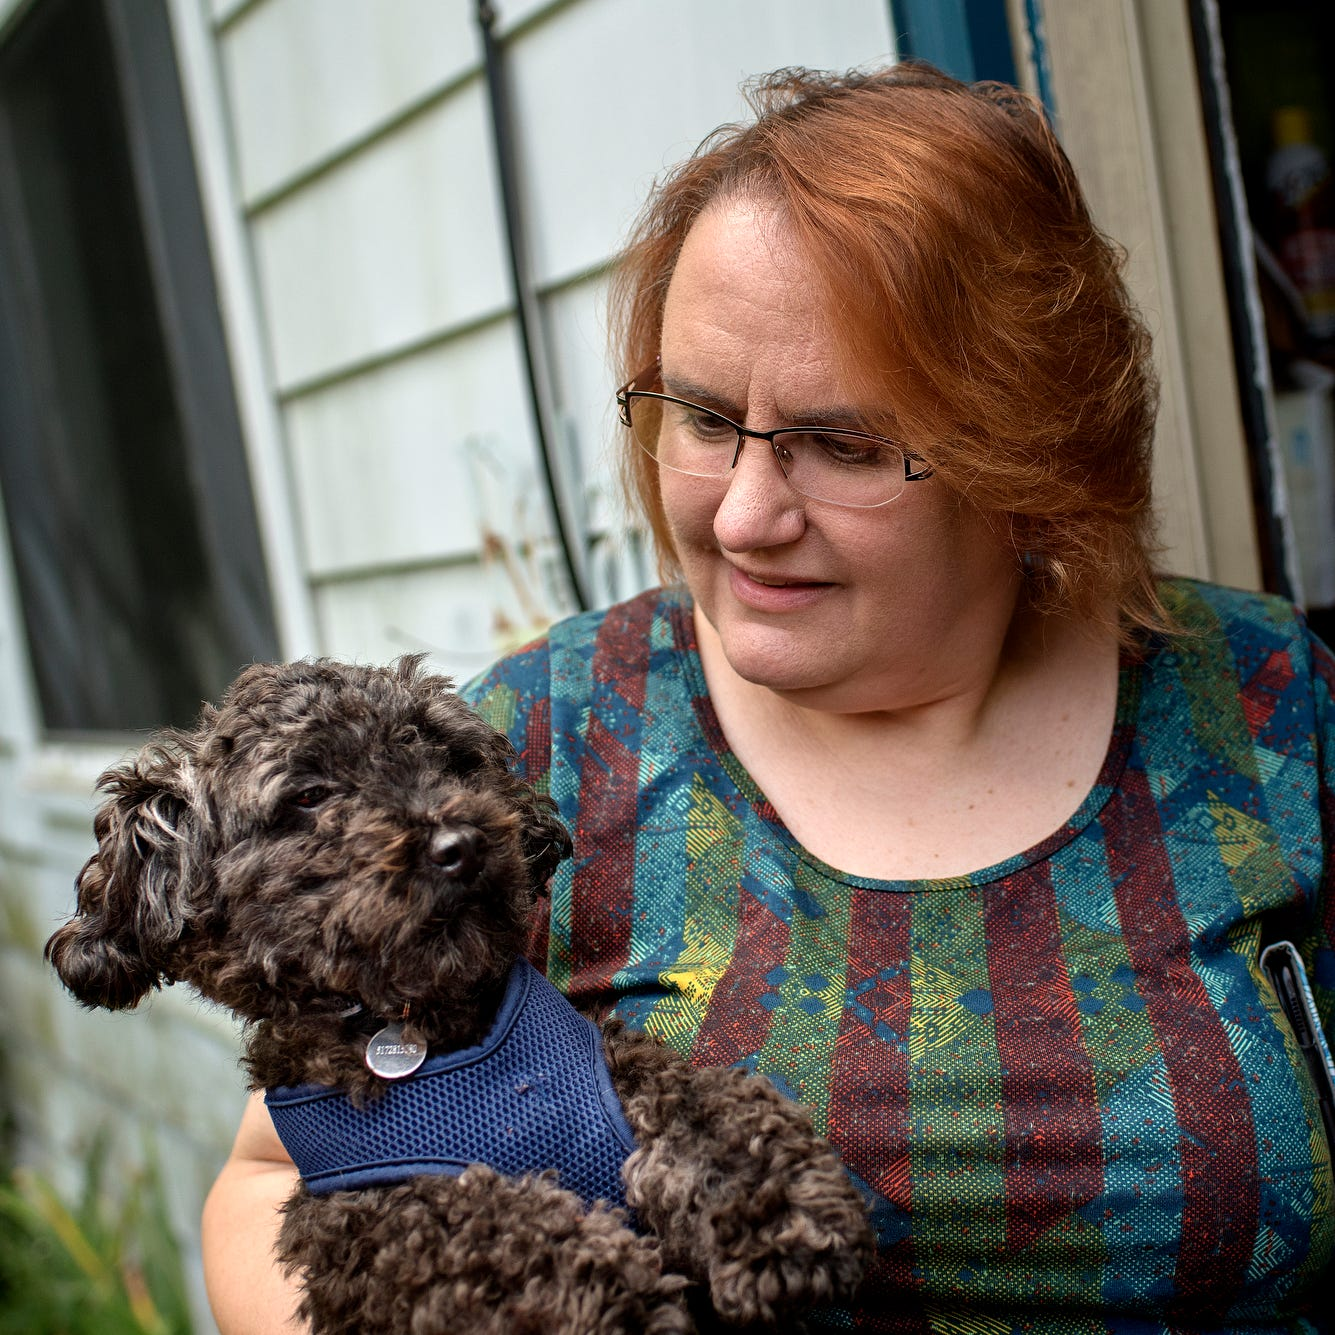 Putnam: Meet the Lansing woman who has taken more than 200 rescued dogs into her home